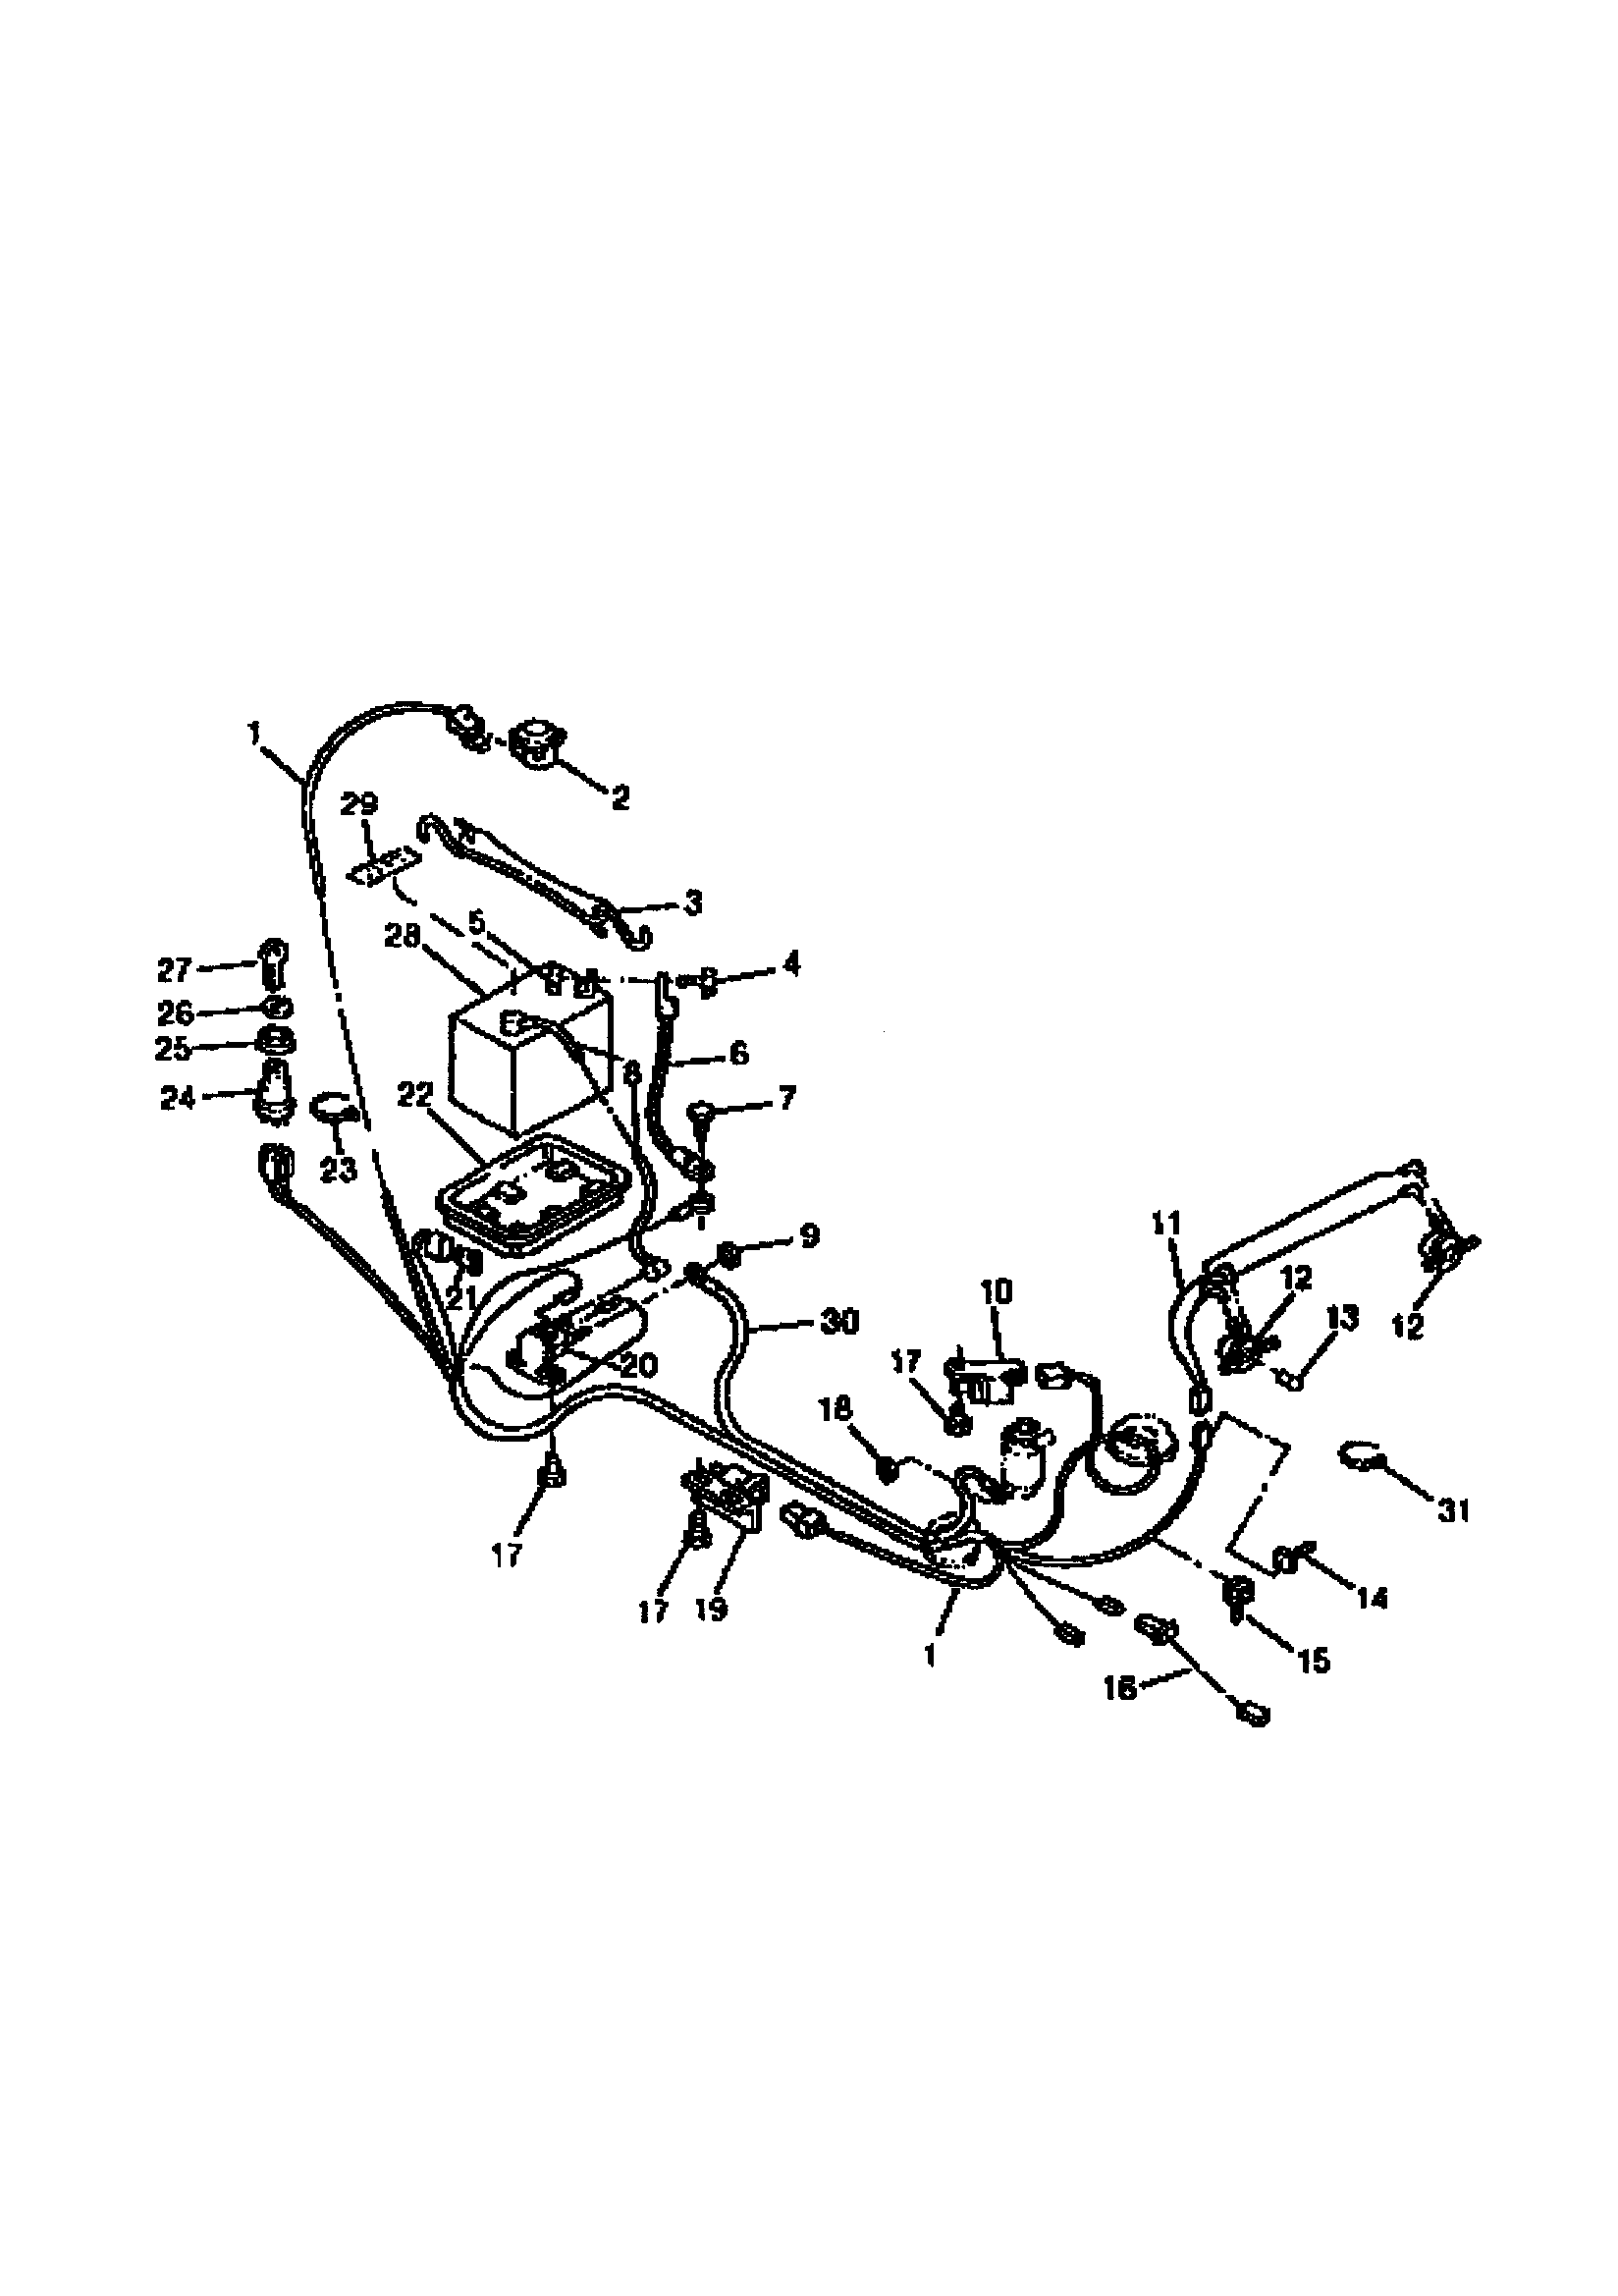 TA_4253] Saber 1438 Tractor Ignition Switch Wiring Diagram Free Diagram Amenti Spoat Inifo Trons Mohammedshrine Librar Wiring 101